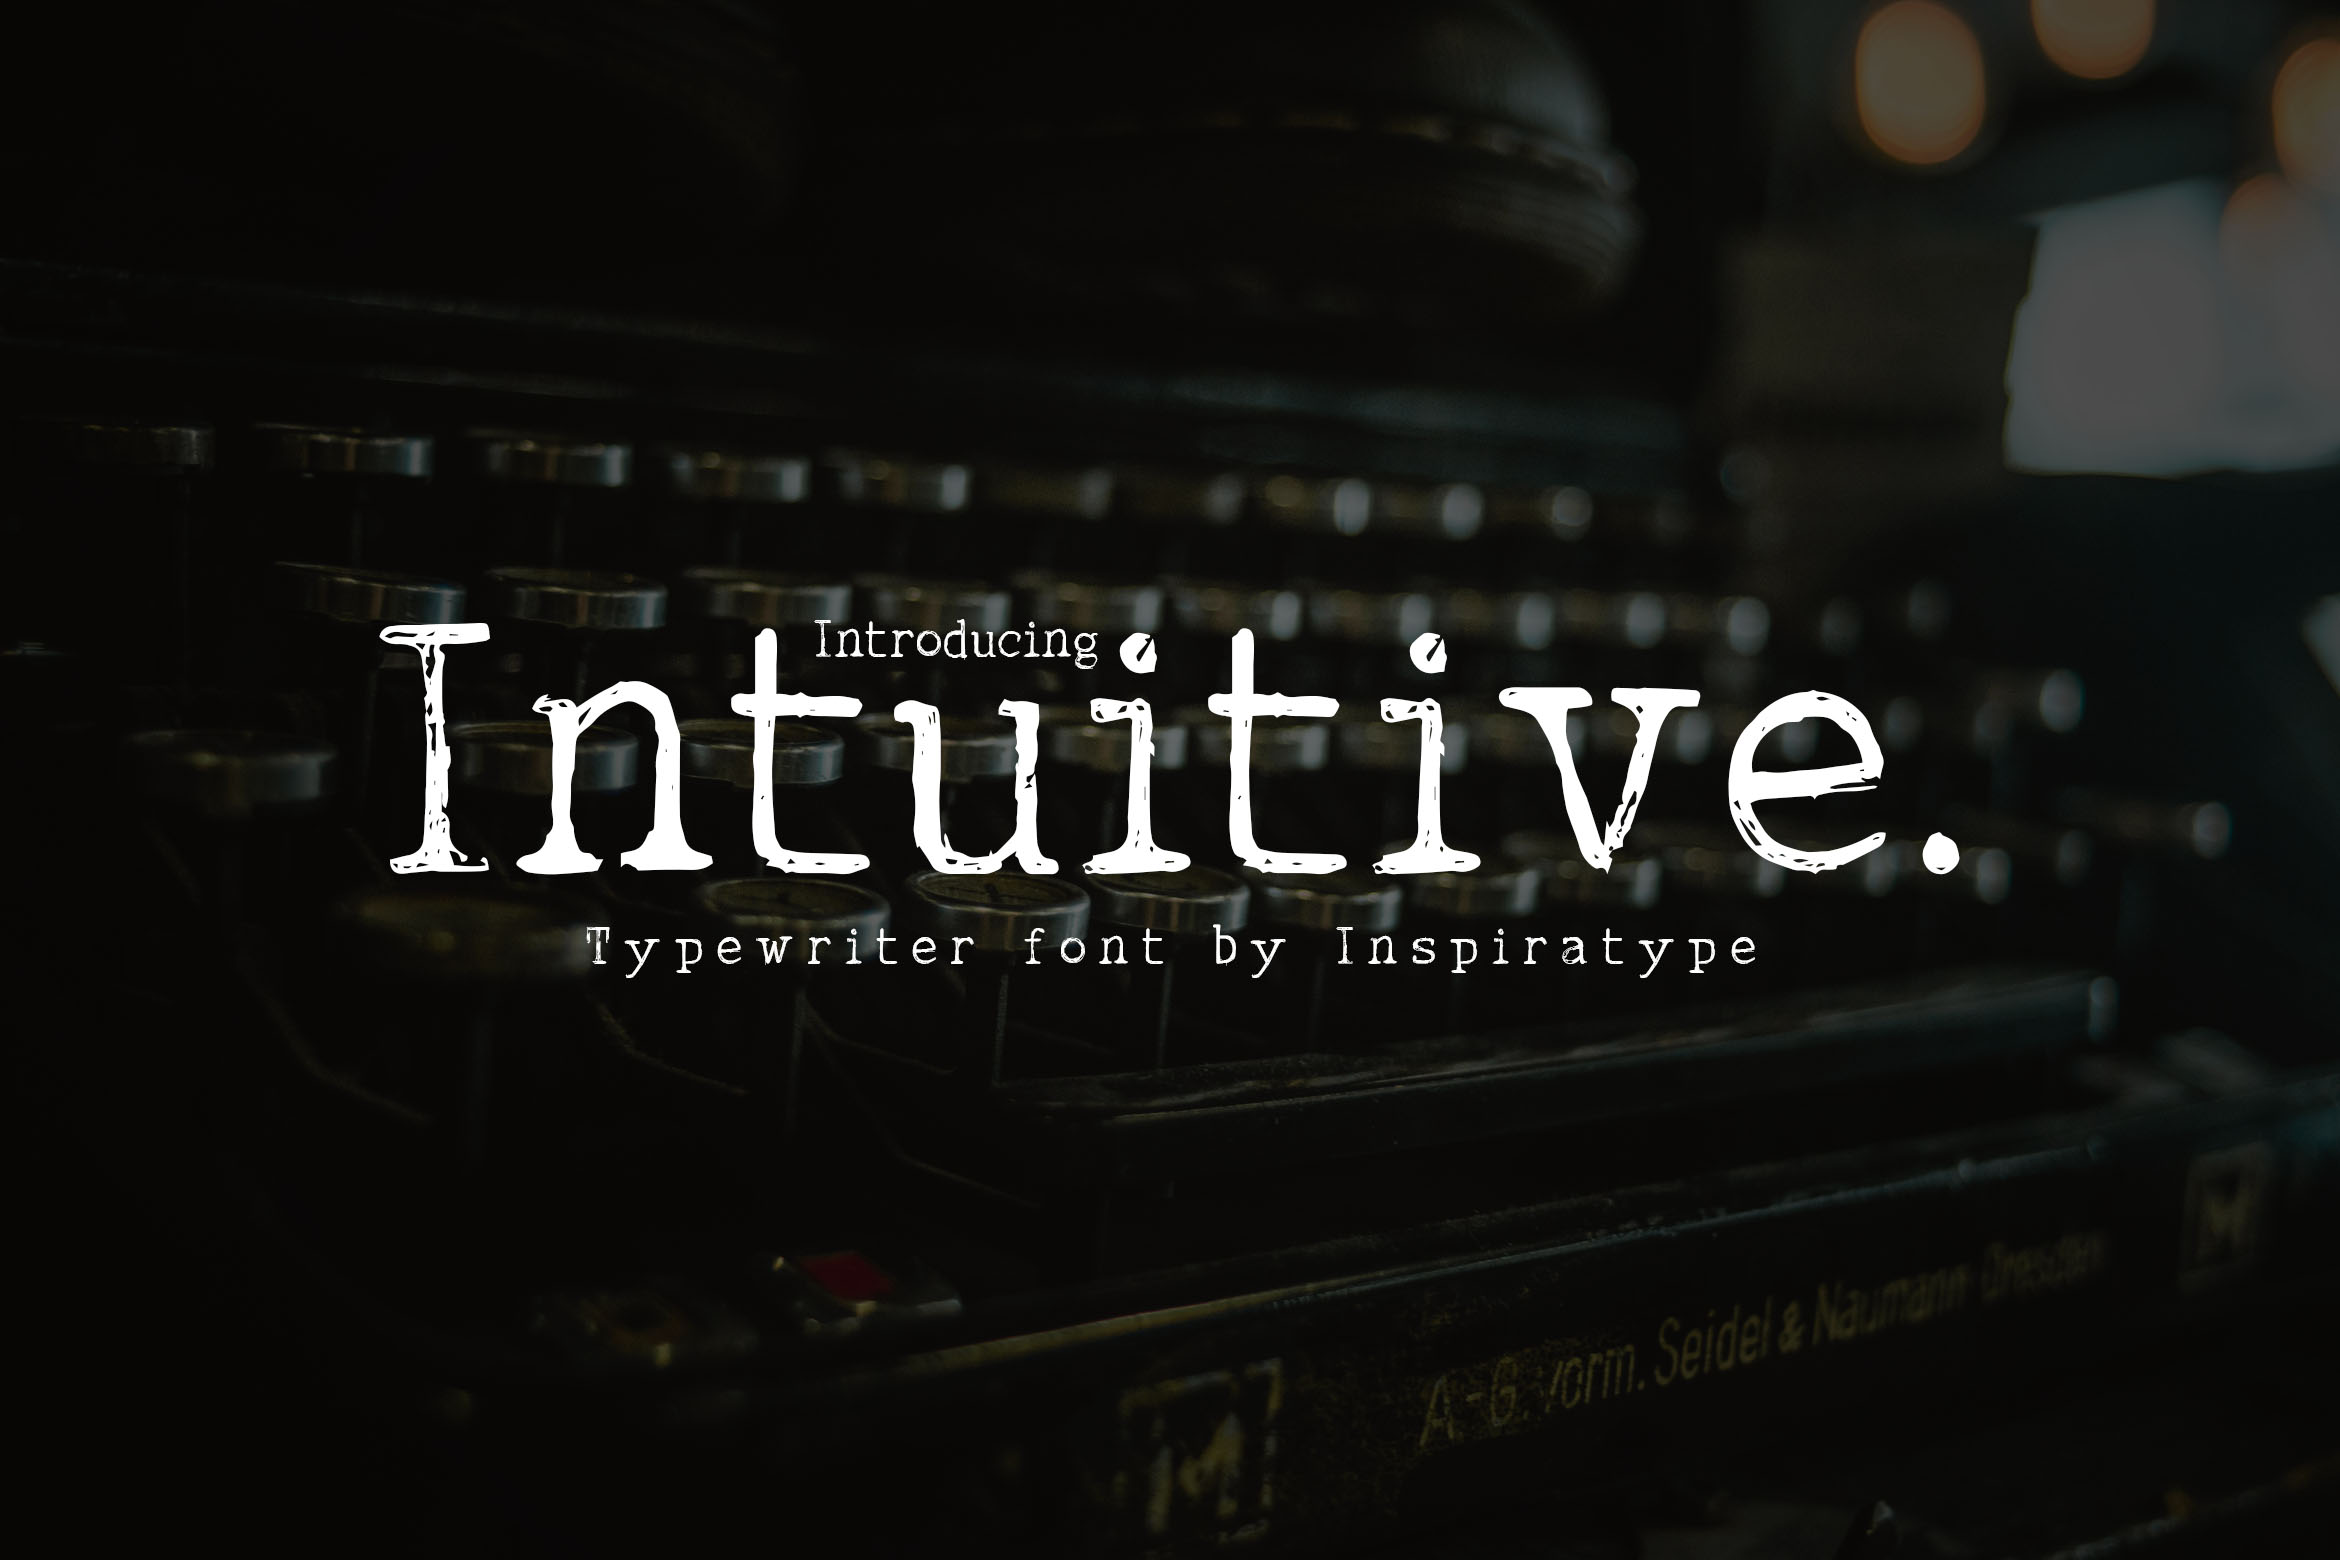 INTUITIVE FREE